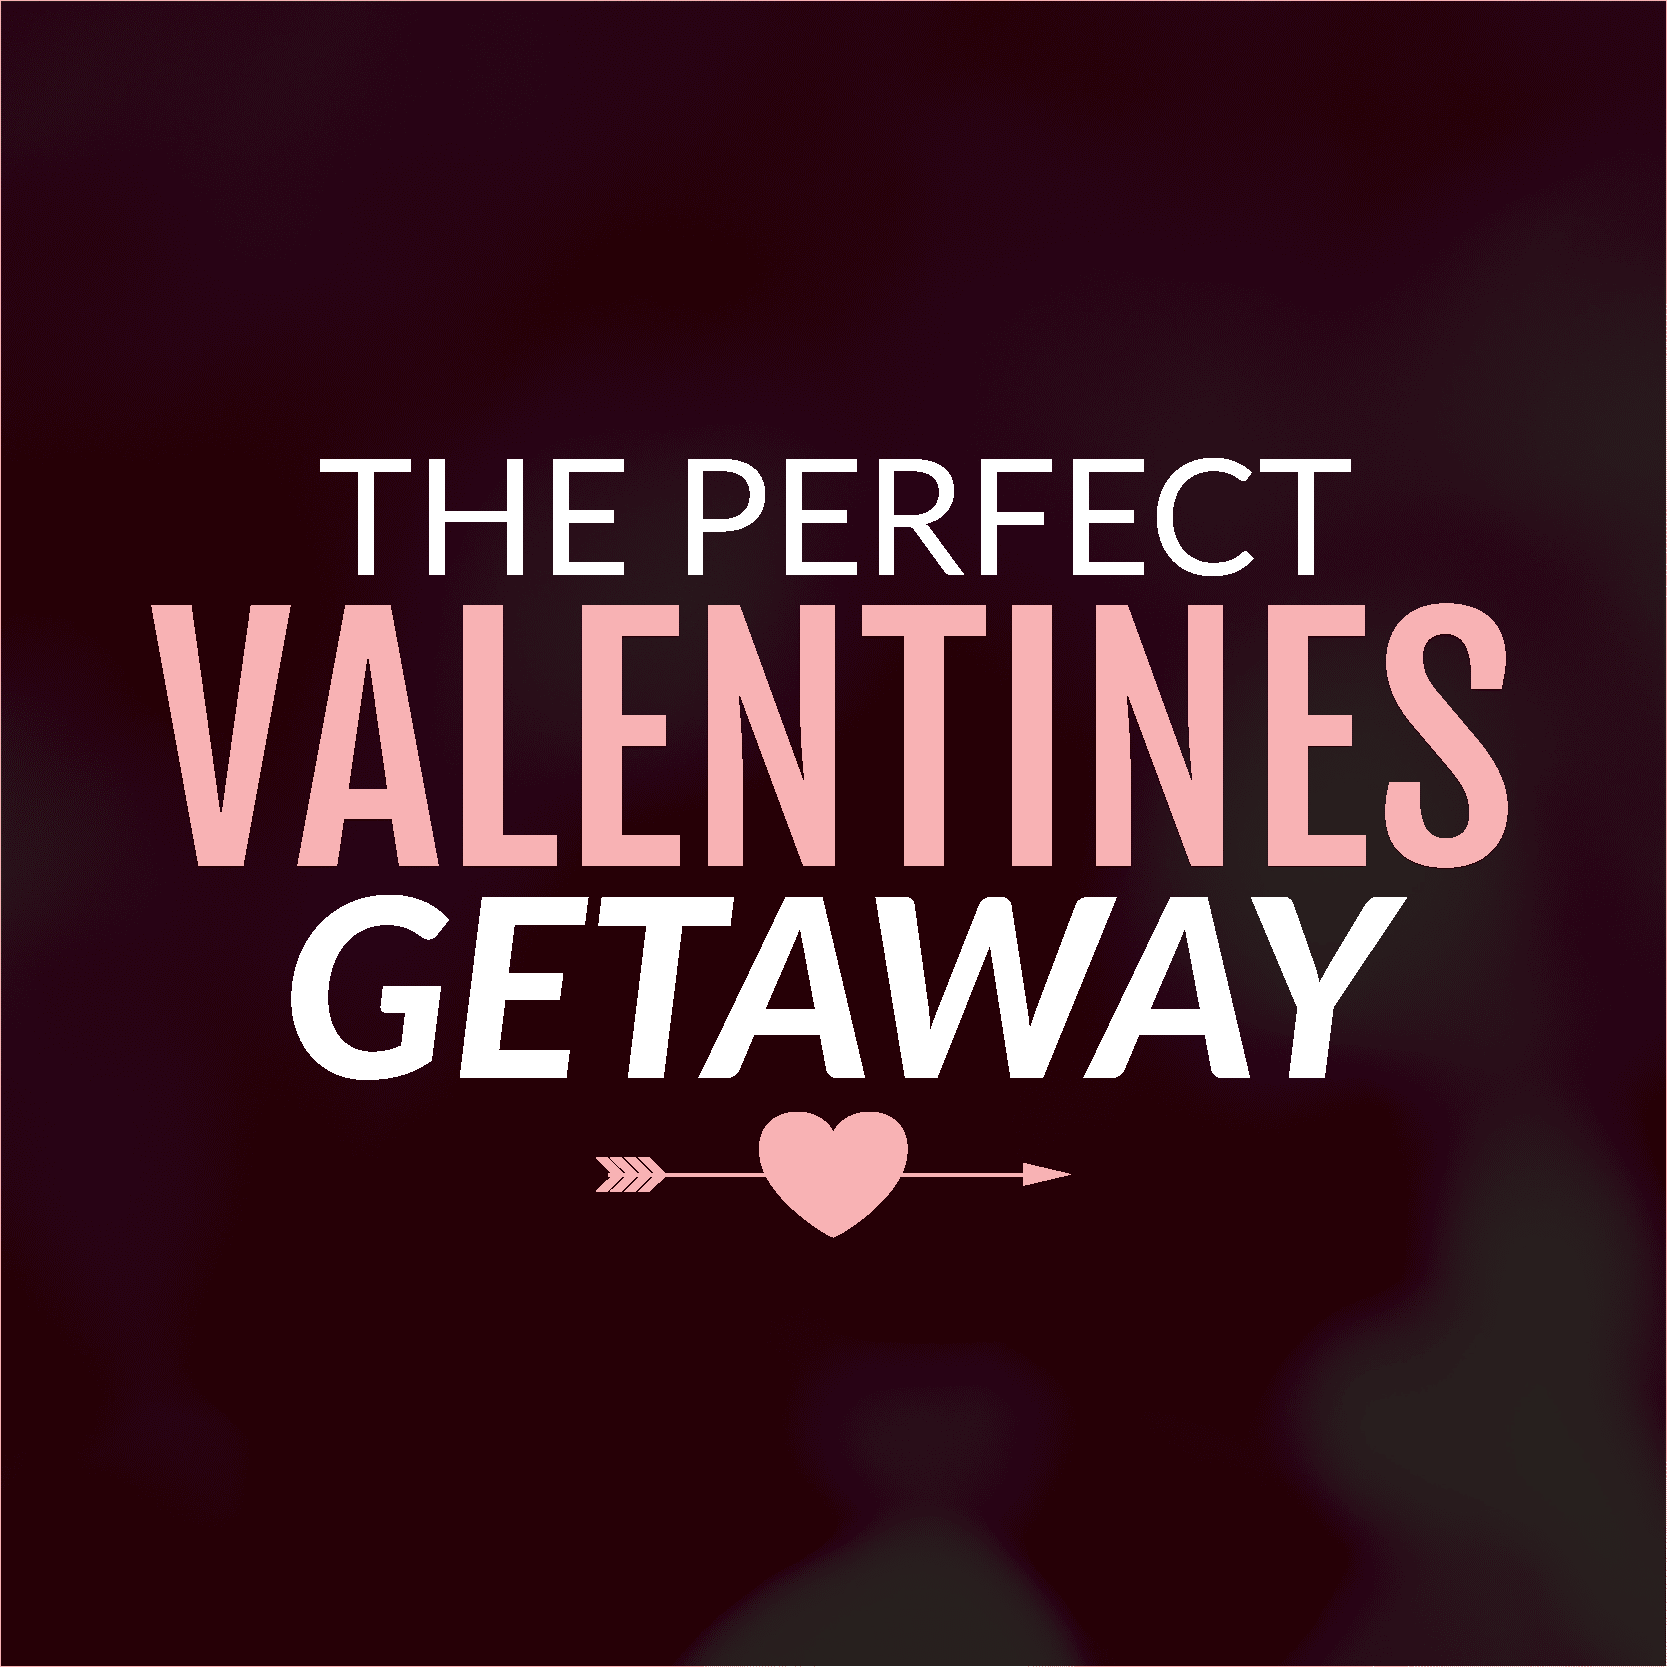 The Perfect Valentines Getaway